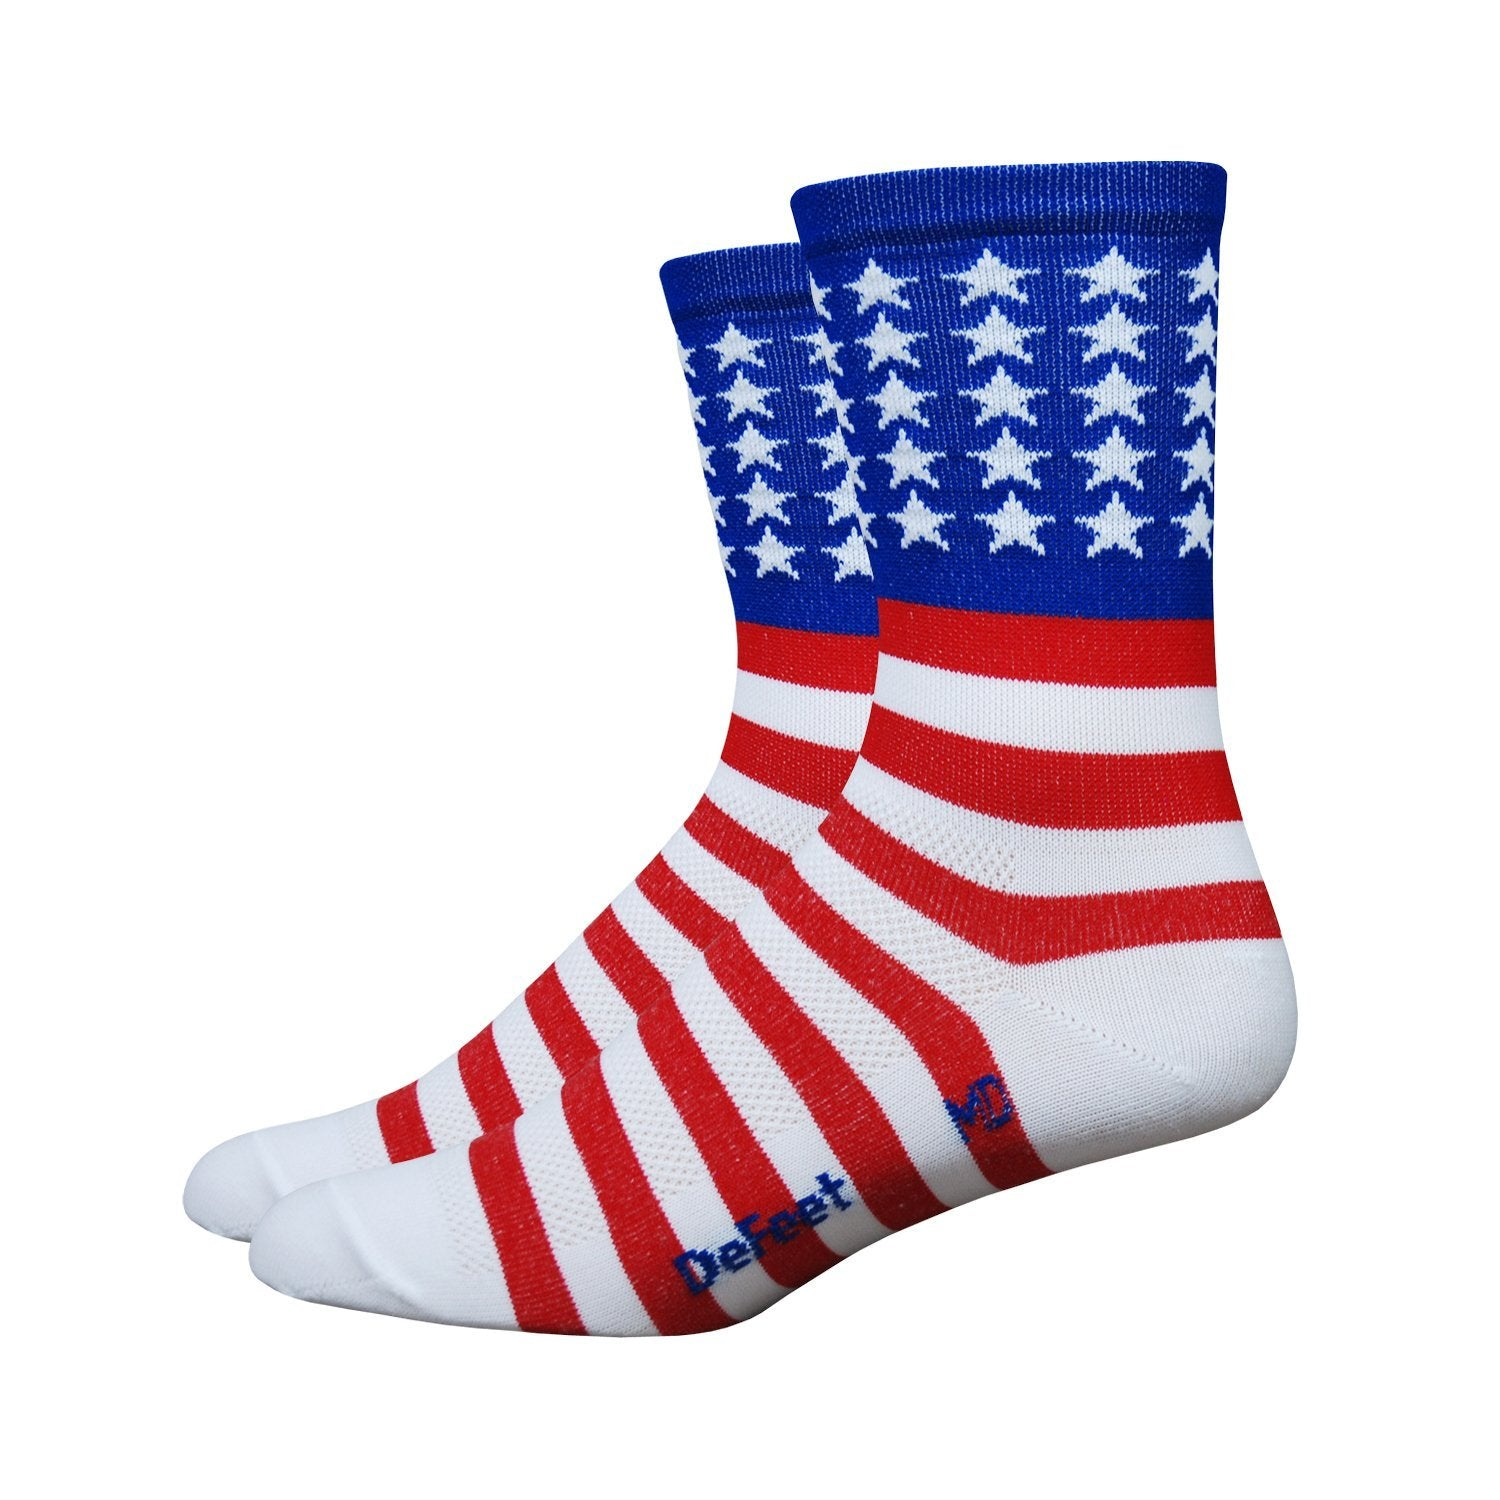 Defeet Cycle Clothing > Socks Defeet Aireator USA